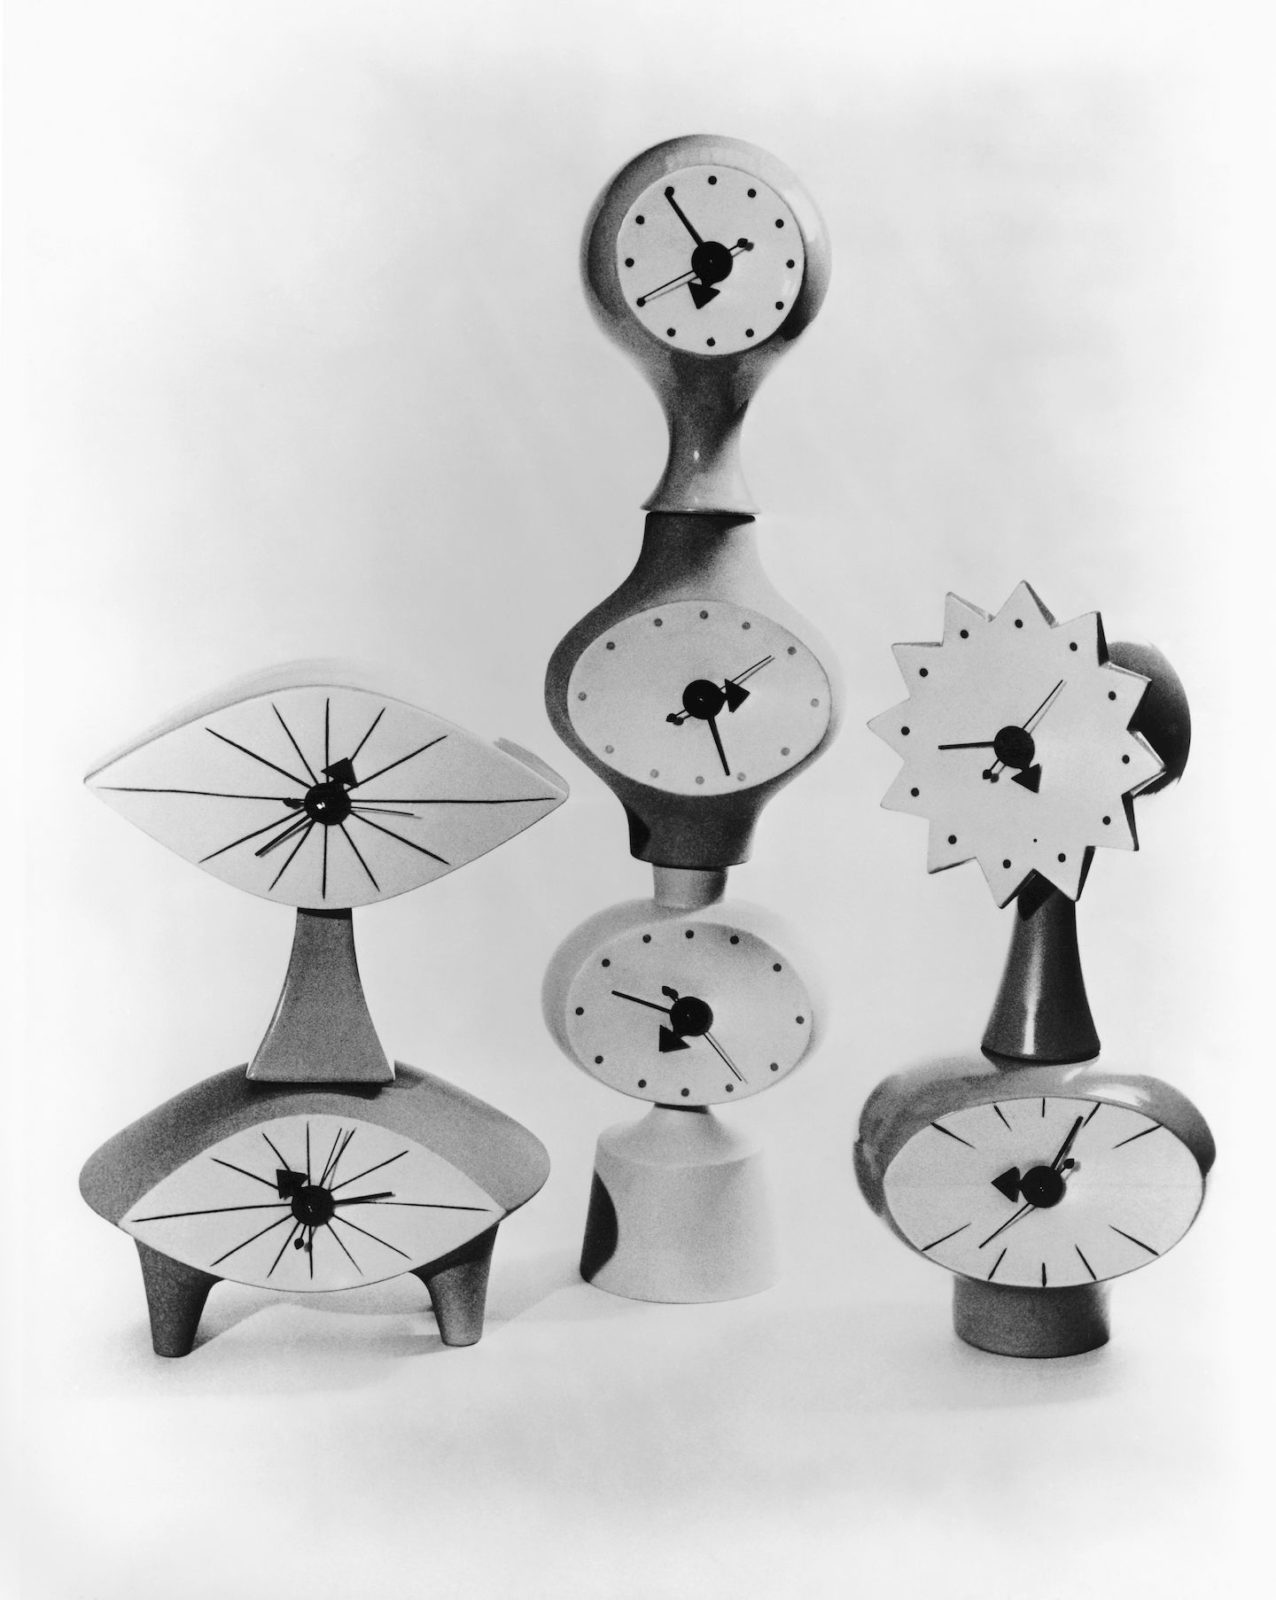 Ceramic Clocks, Model #3